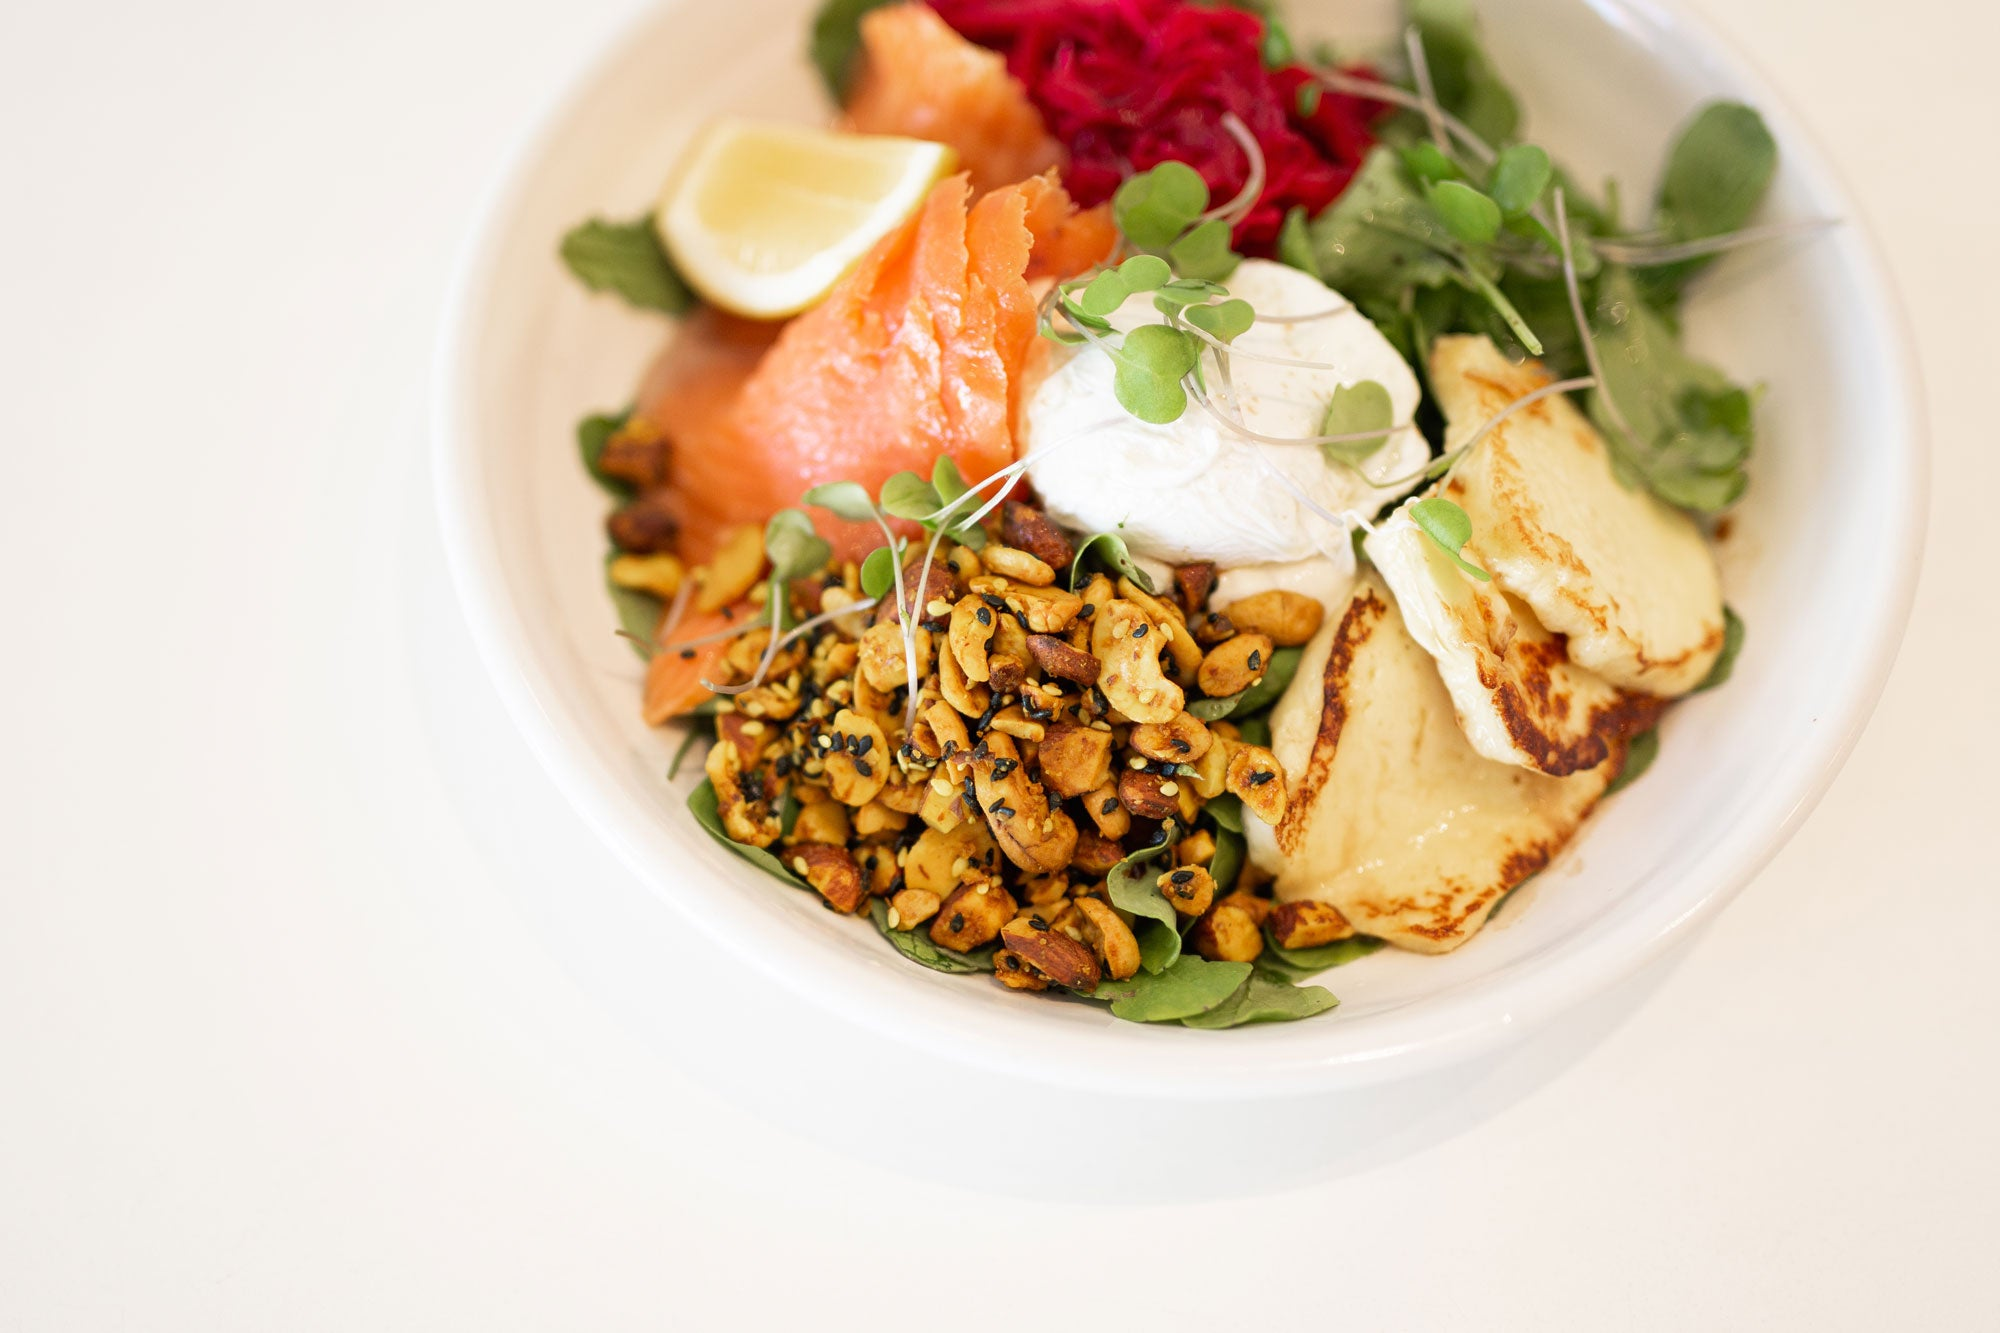 Salmon & Haloumi Bowl at Catroux Cafe